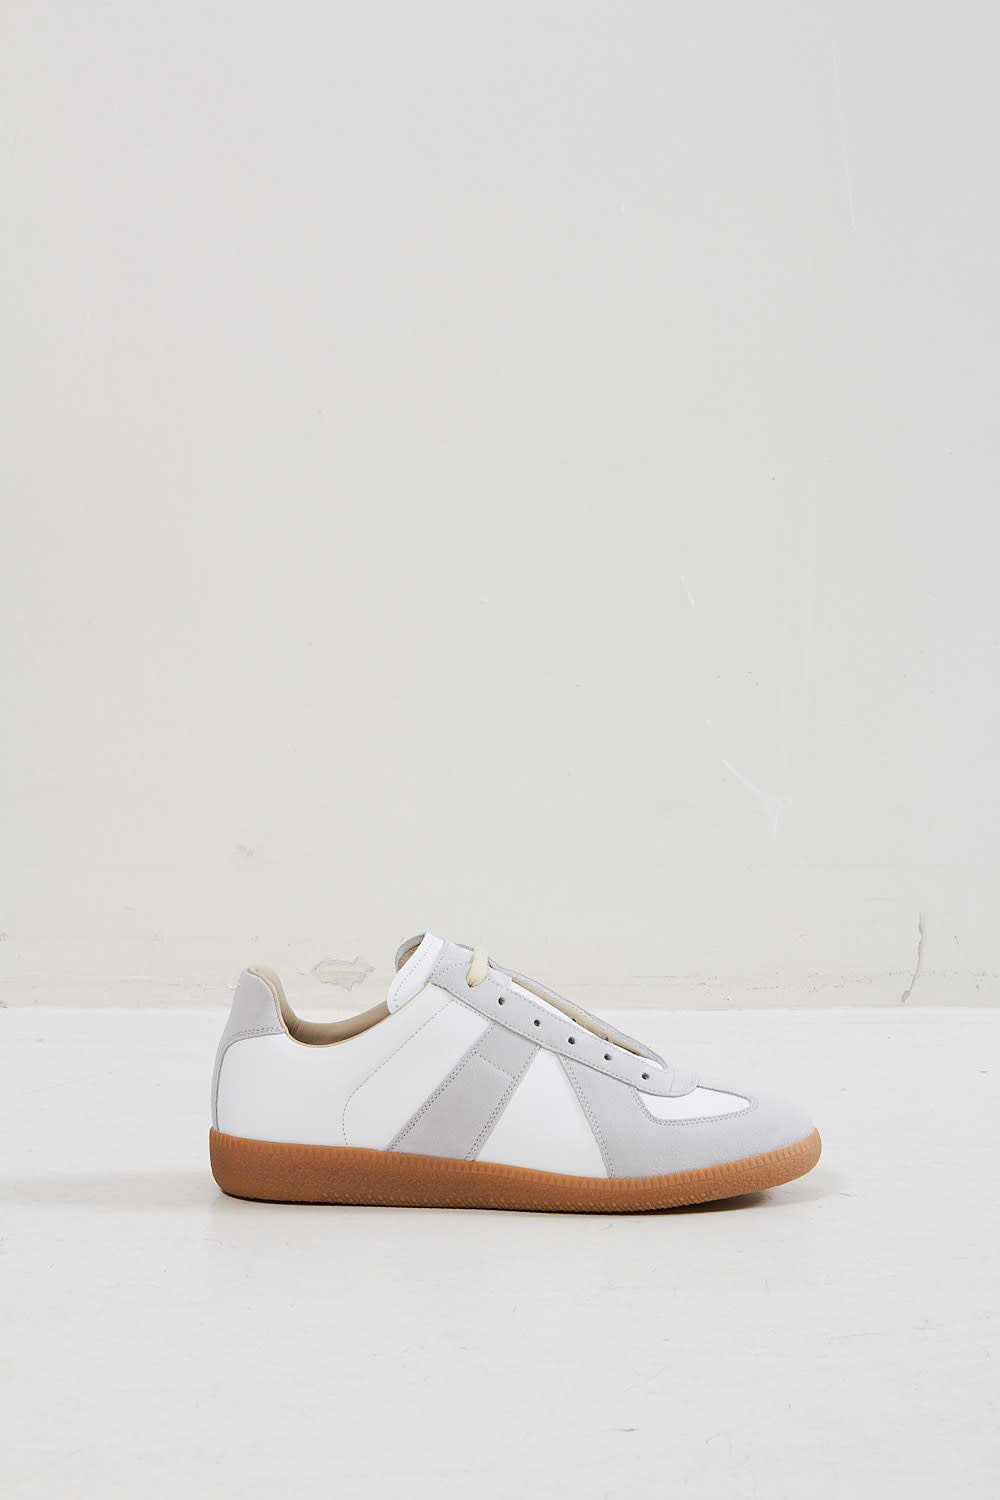 Maison Margiela - Replica sneakers